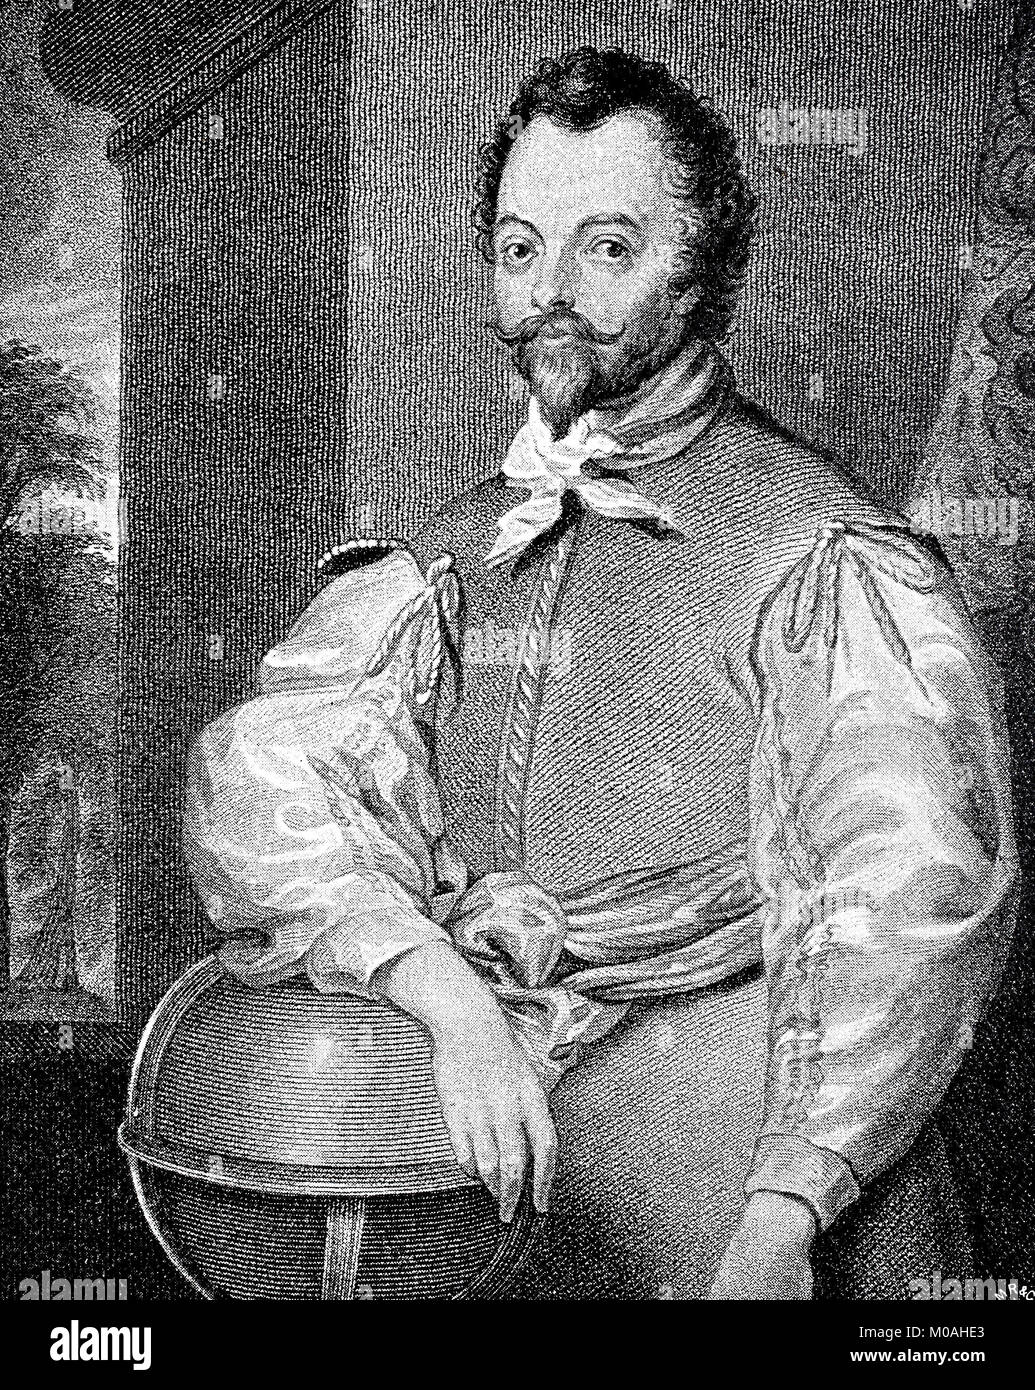 sir francis drake helped pay queen elizabeths national debt After asking sir thomas dale, the settlement's governor, for her hand in marriage, rolfe and pocahontas had to ask her father as well, to which he surprisingly consented pocahontas herself agreed on the conditions that she would be released from captivity.